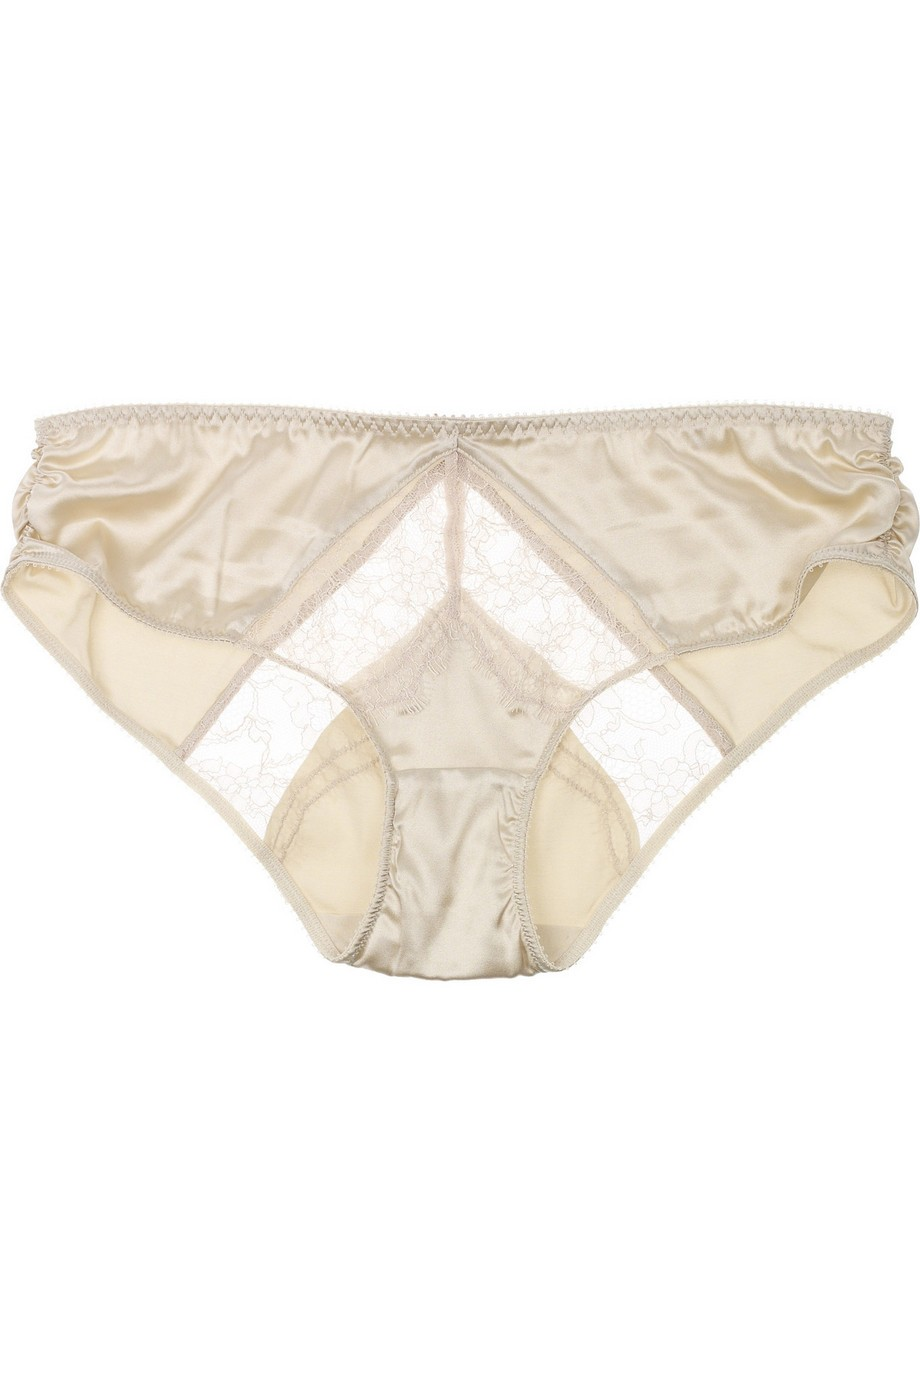 Josephine Marrying mid-rise satin briefs